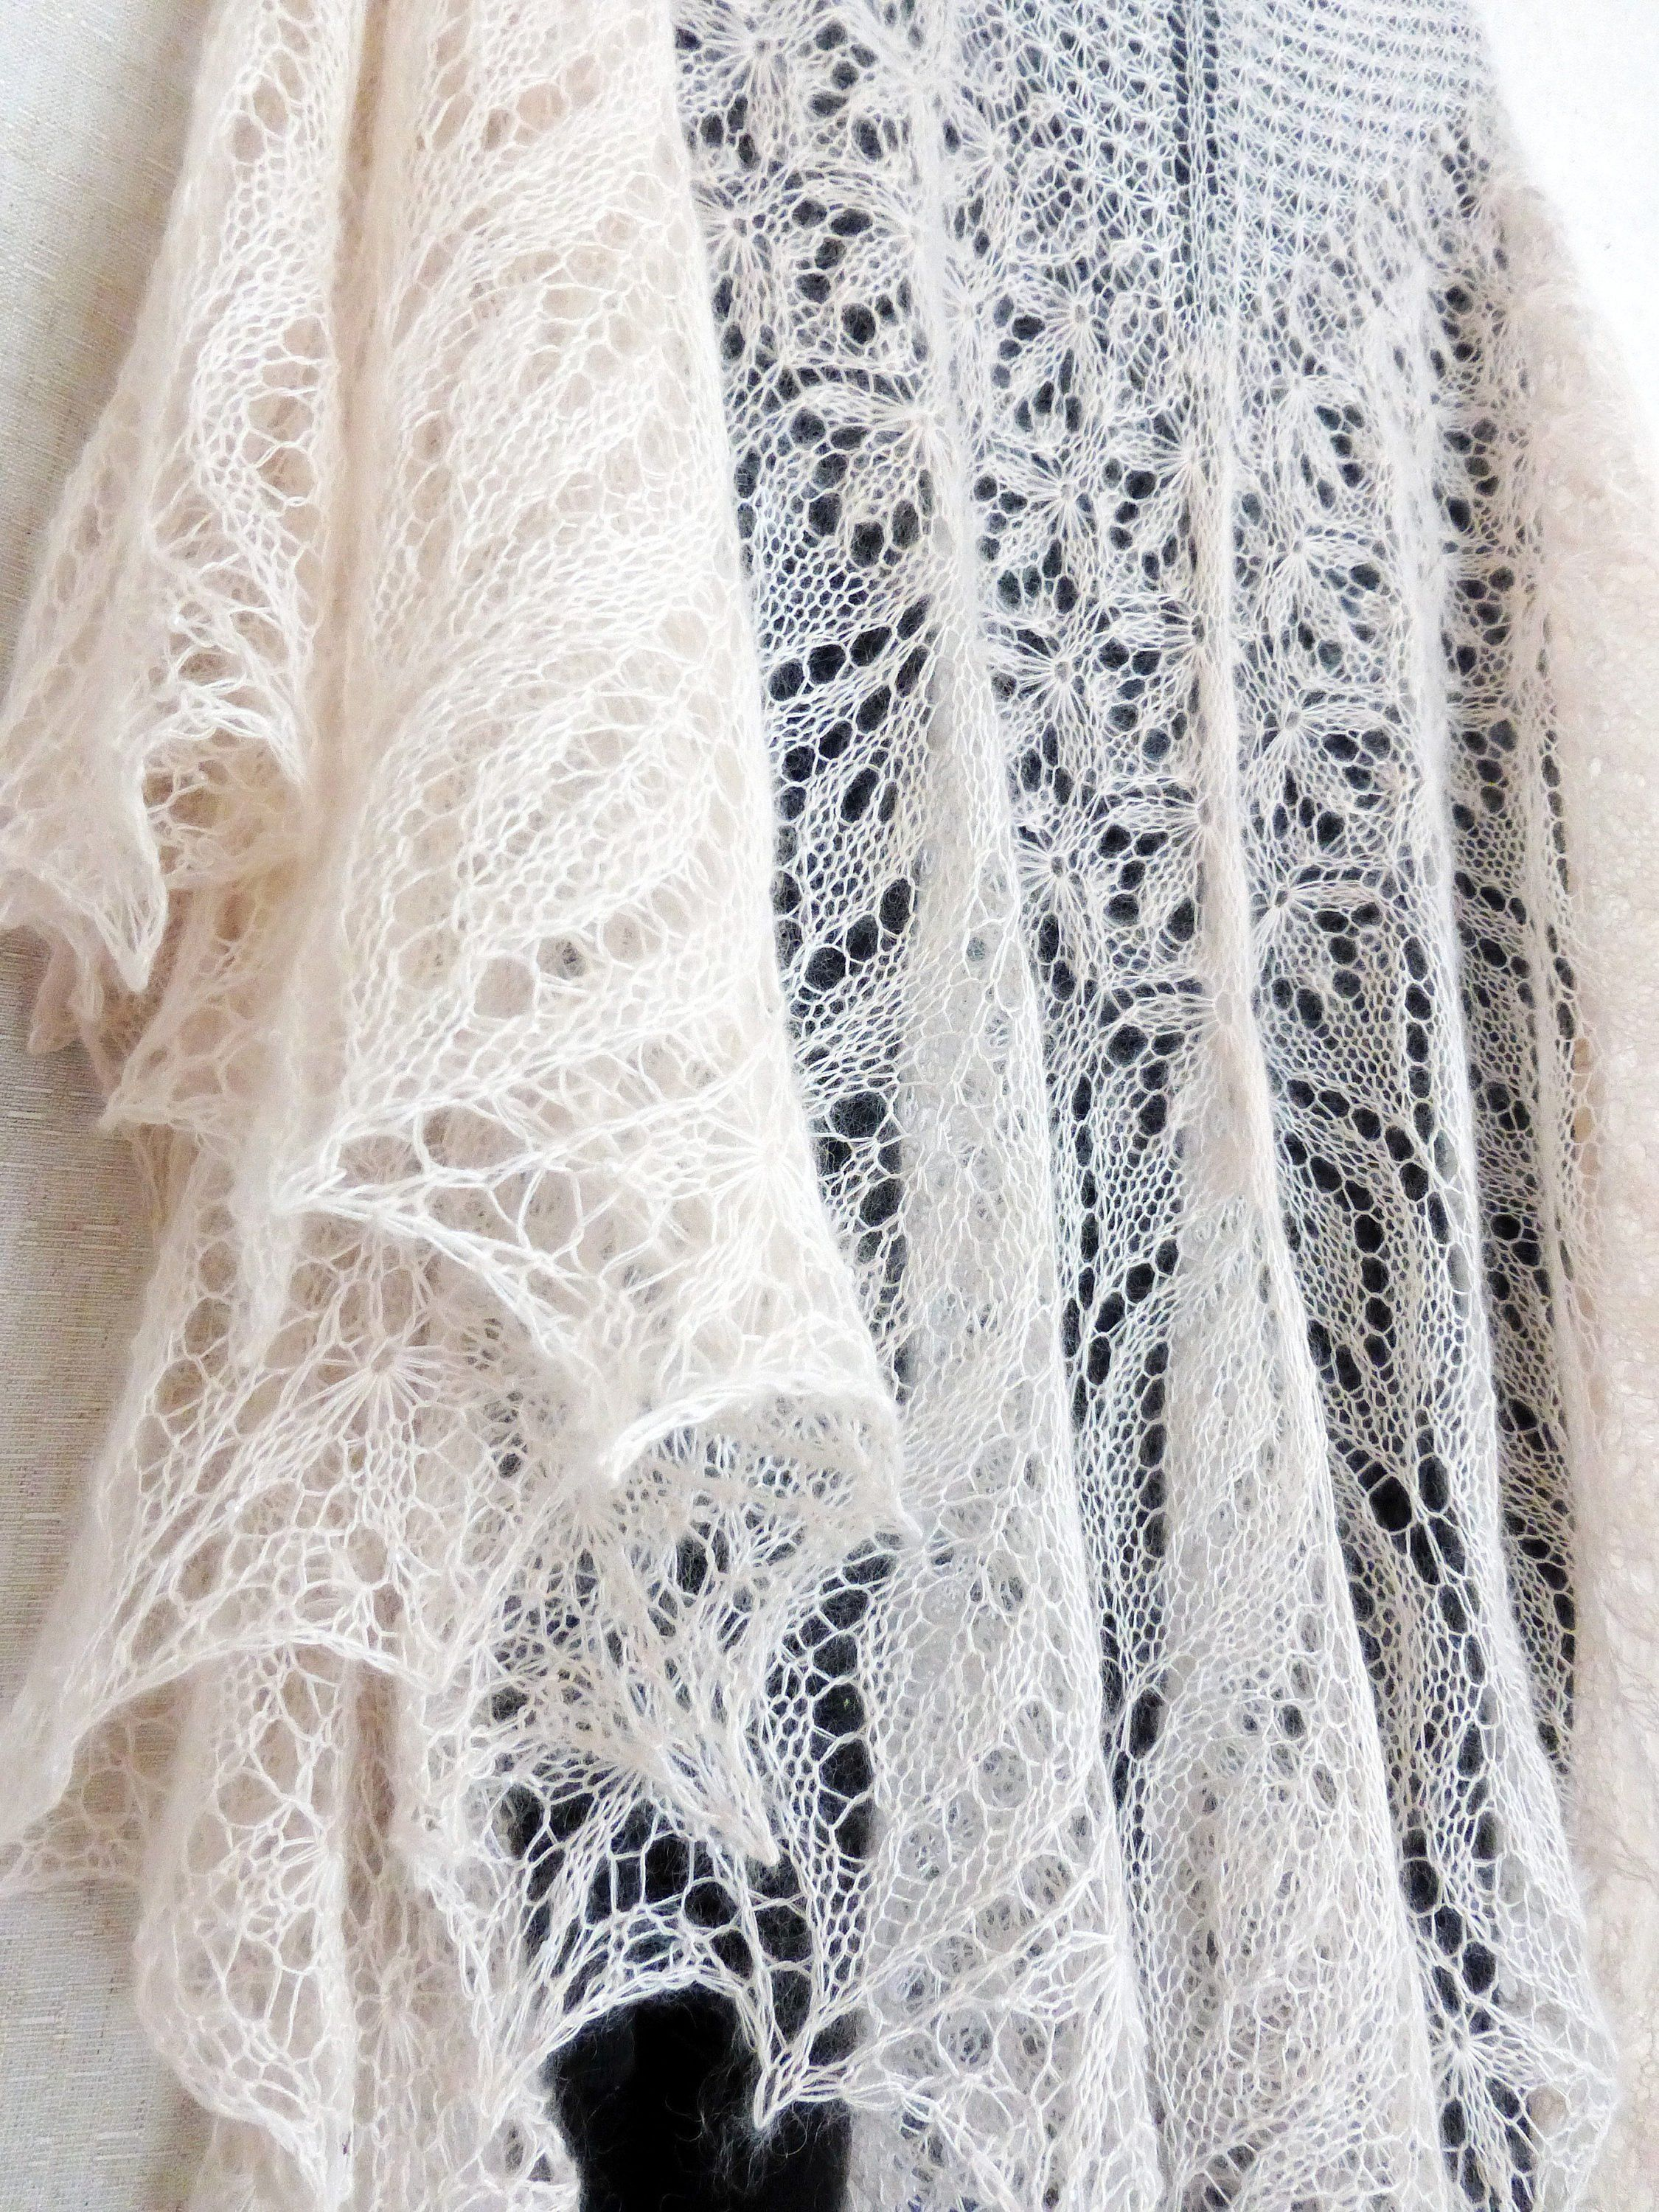 Mohair shawl knitted lace shawl winter wedding bridal wrap knit